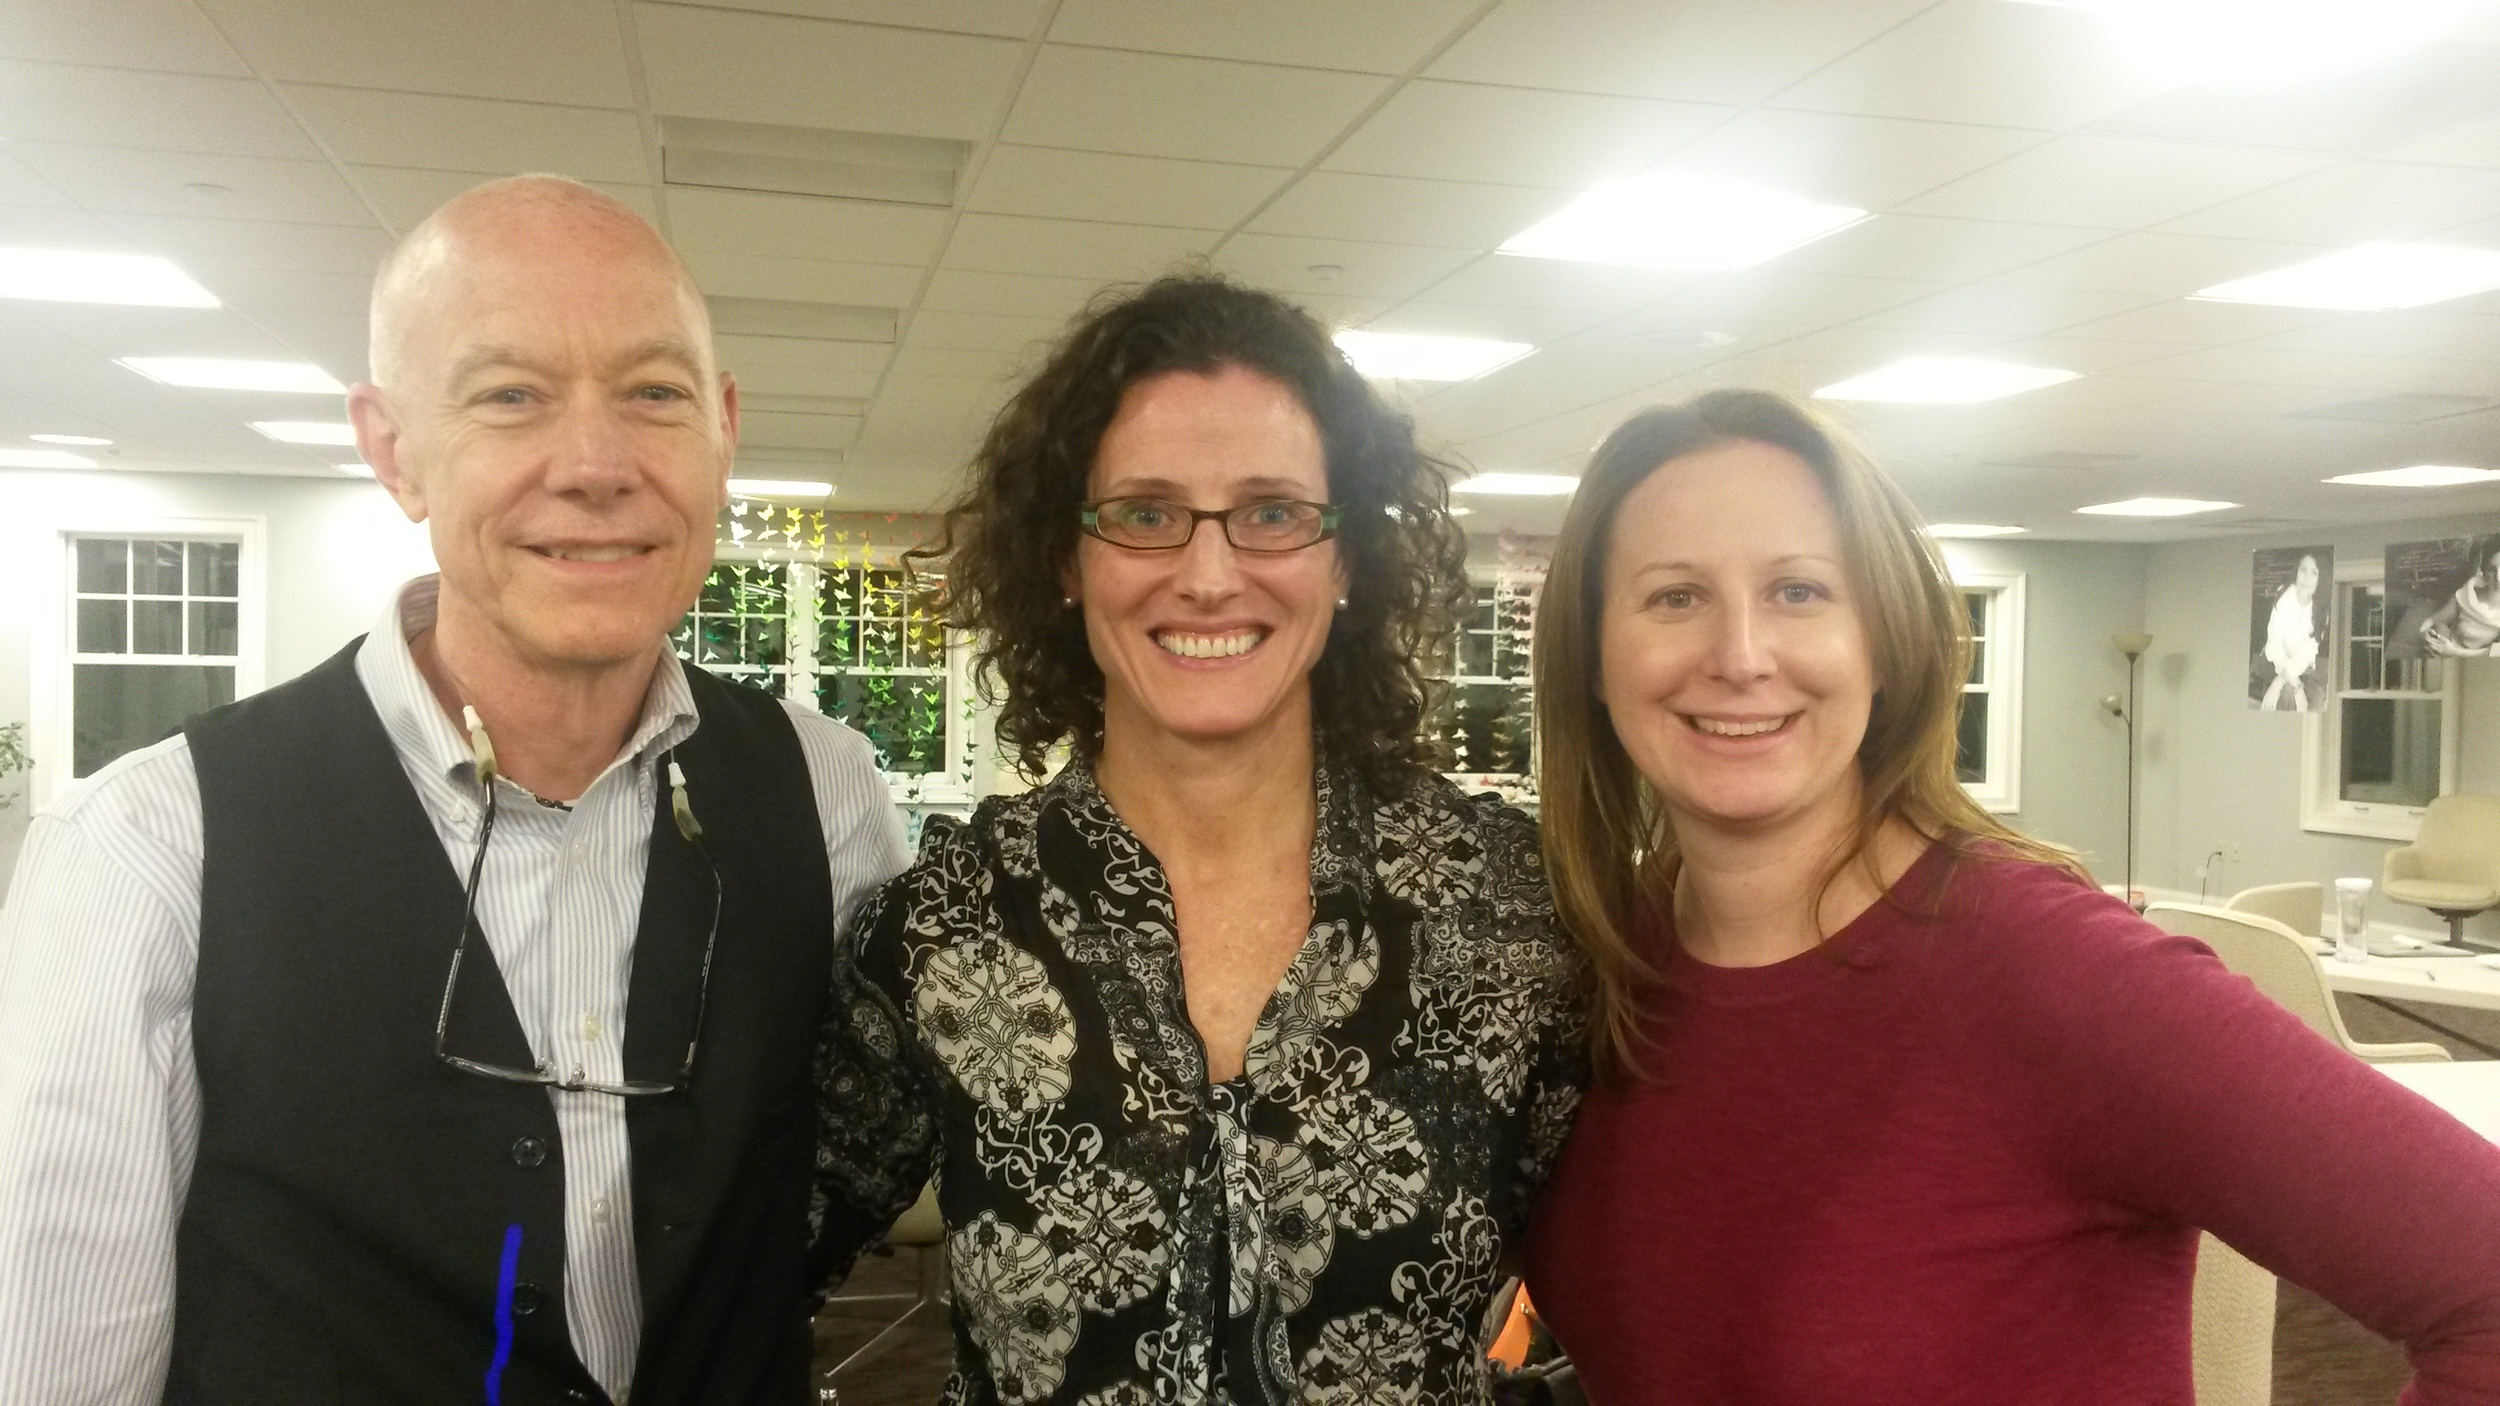 Kevin Berrill MSW,LCSW - Ann's Place, Christine Brennan - Cancer & Careers, Amy DePaolo LCSW OSW-C